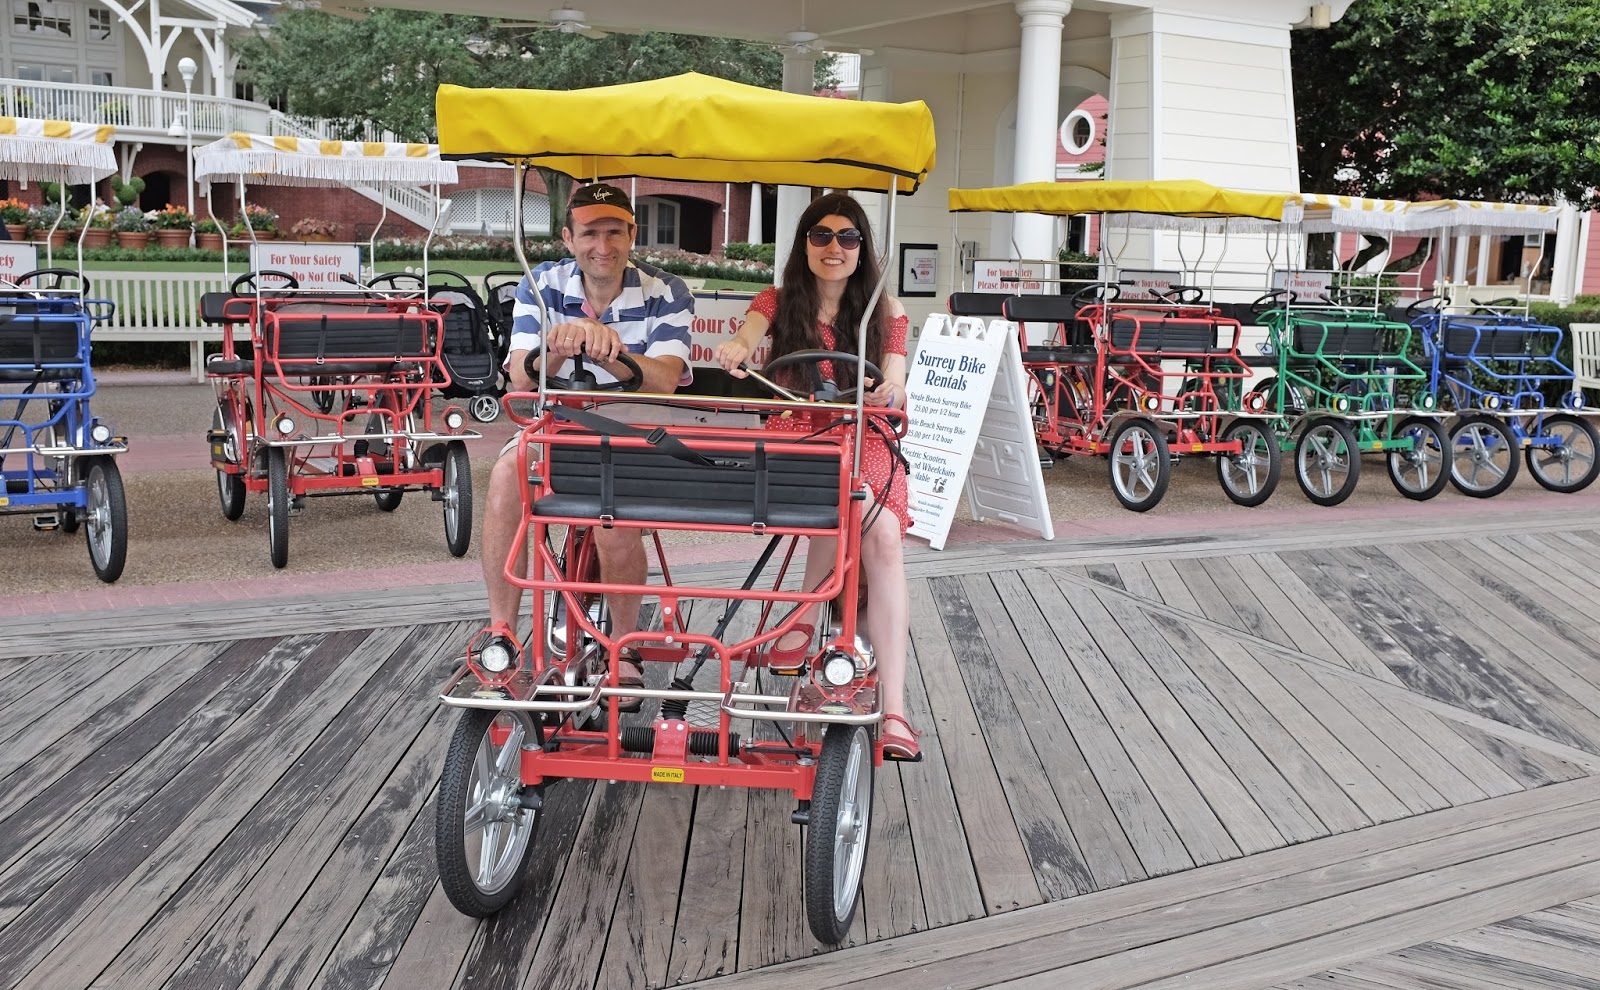 Surrey bike rentals at Walt Disney World